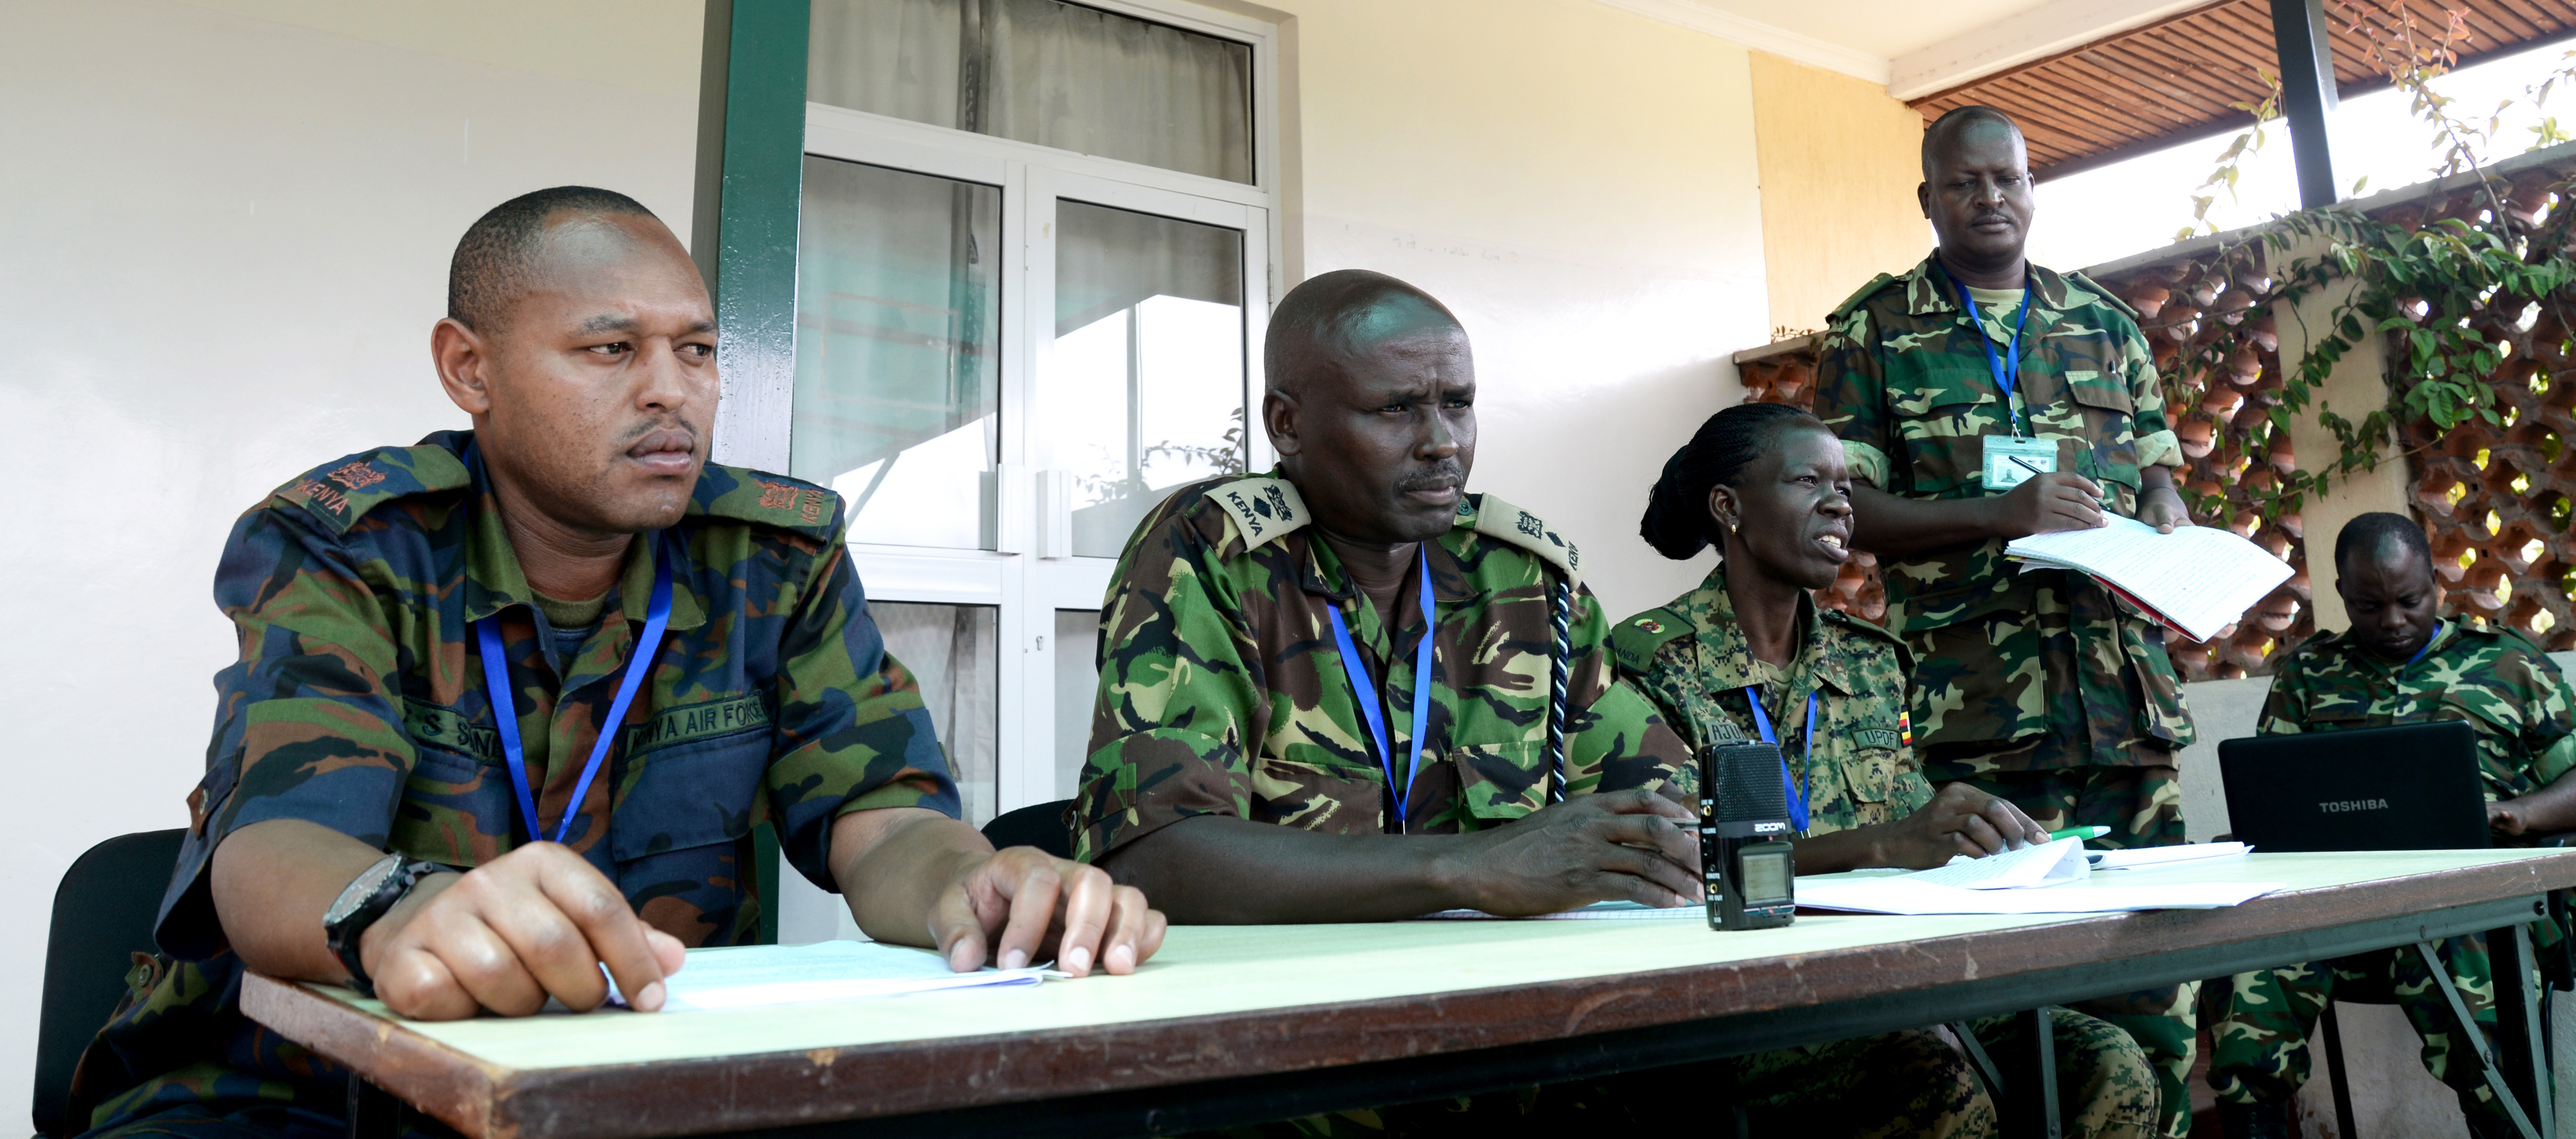 Officers from Kenya, Burundi and Uganda answer questions at a simulated press conference March 3, 2016, during an exercise to complete an AMISOM staff officers course in Nairobi, Kenya. Course mentors recorded the practice conference to show the officers their performance and ultimately lead to improvement. (U.S. Air Force photo by Staff Sgt. Kate Thornton)